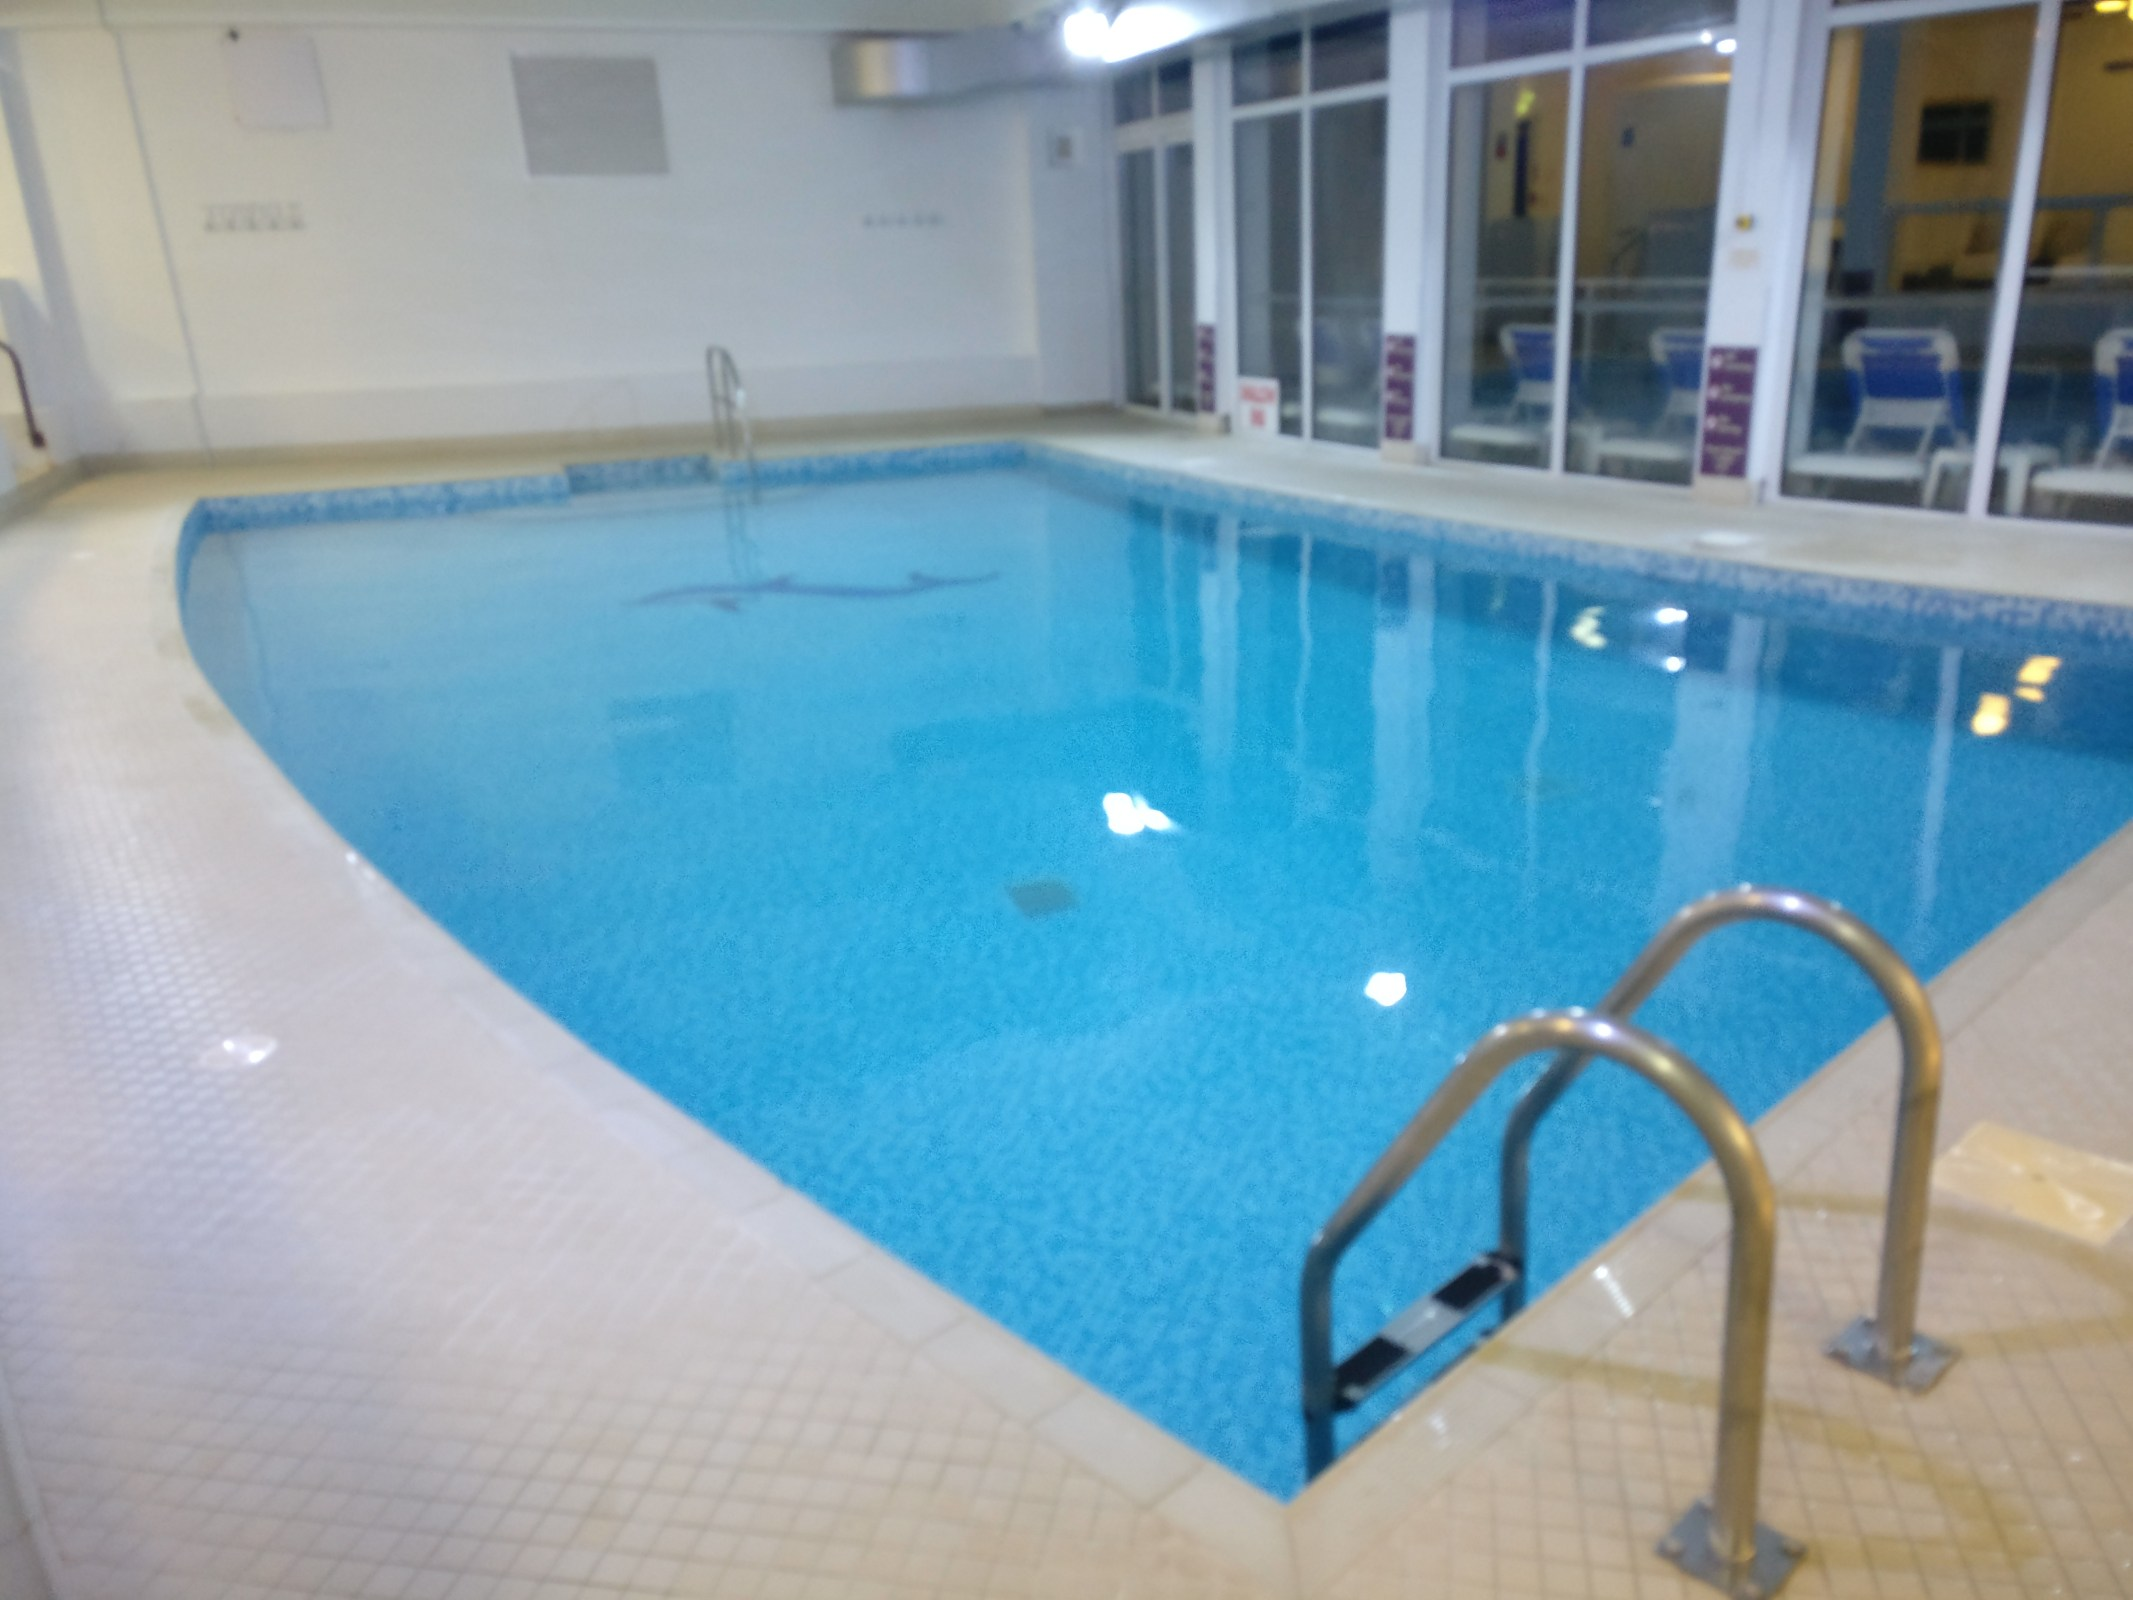 The Imperial Torquay Pool